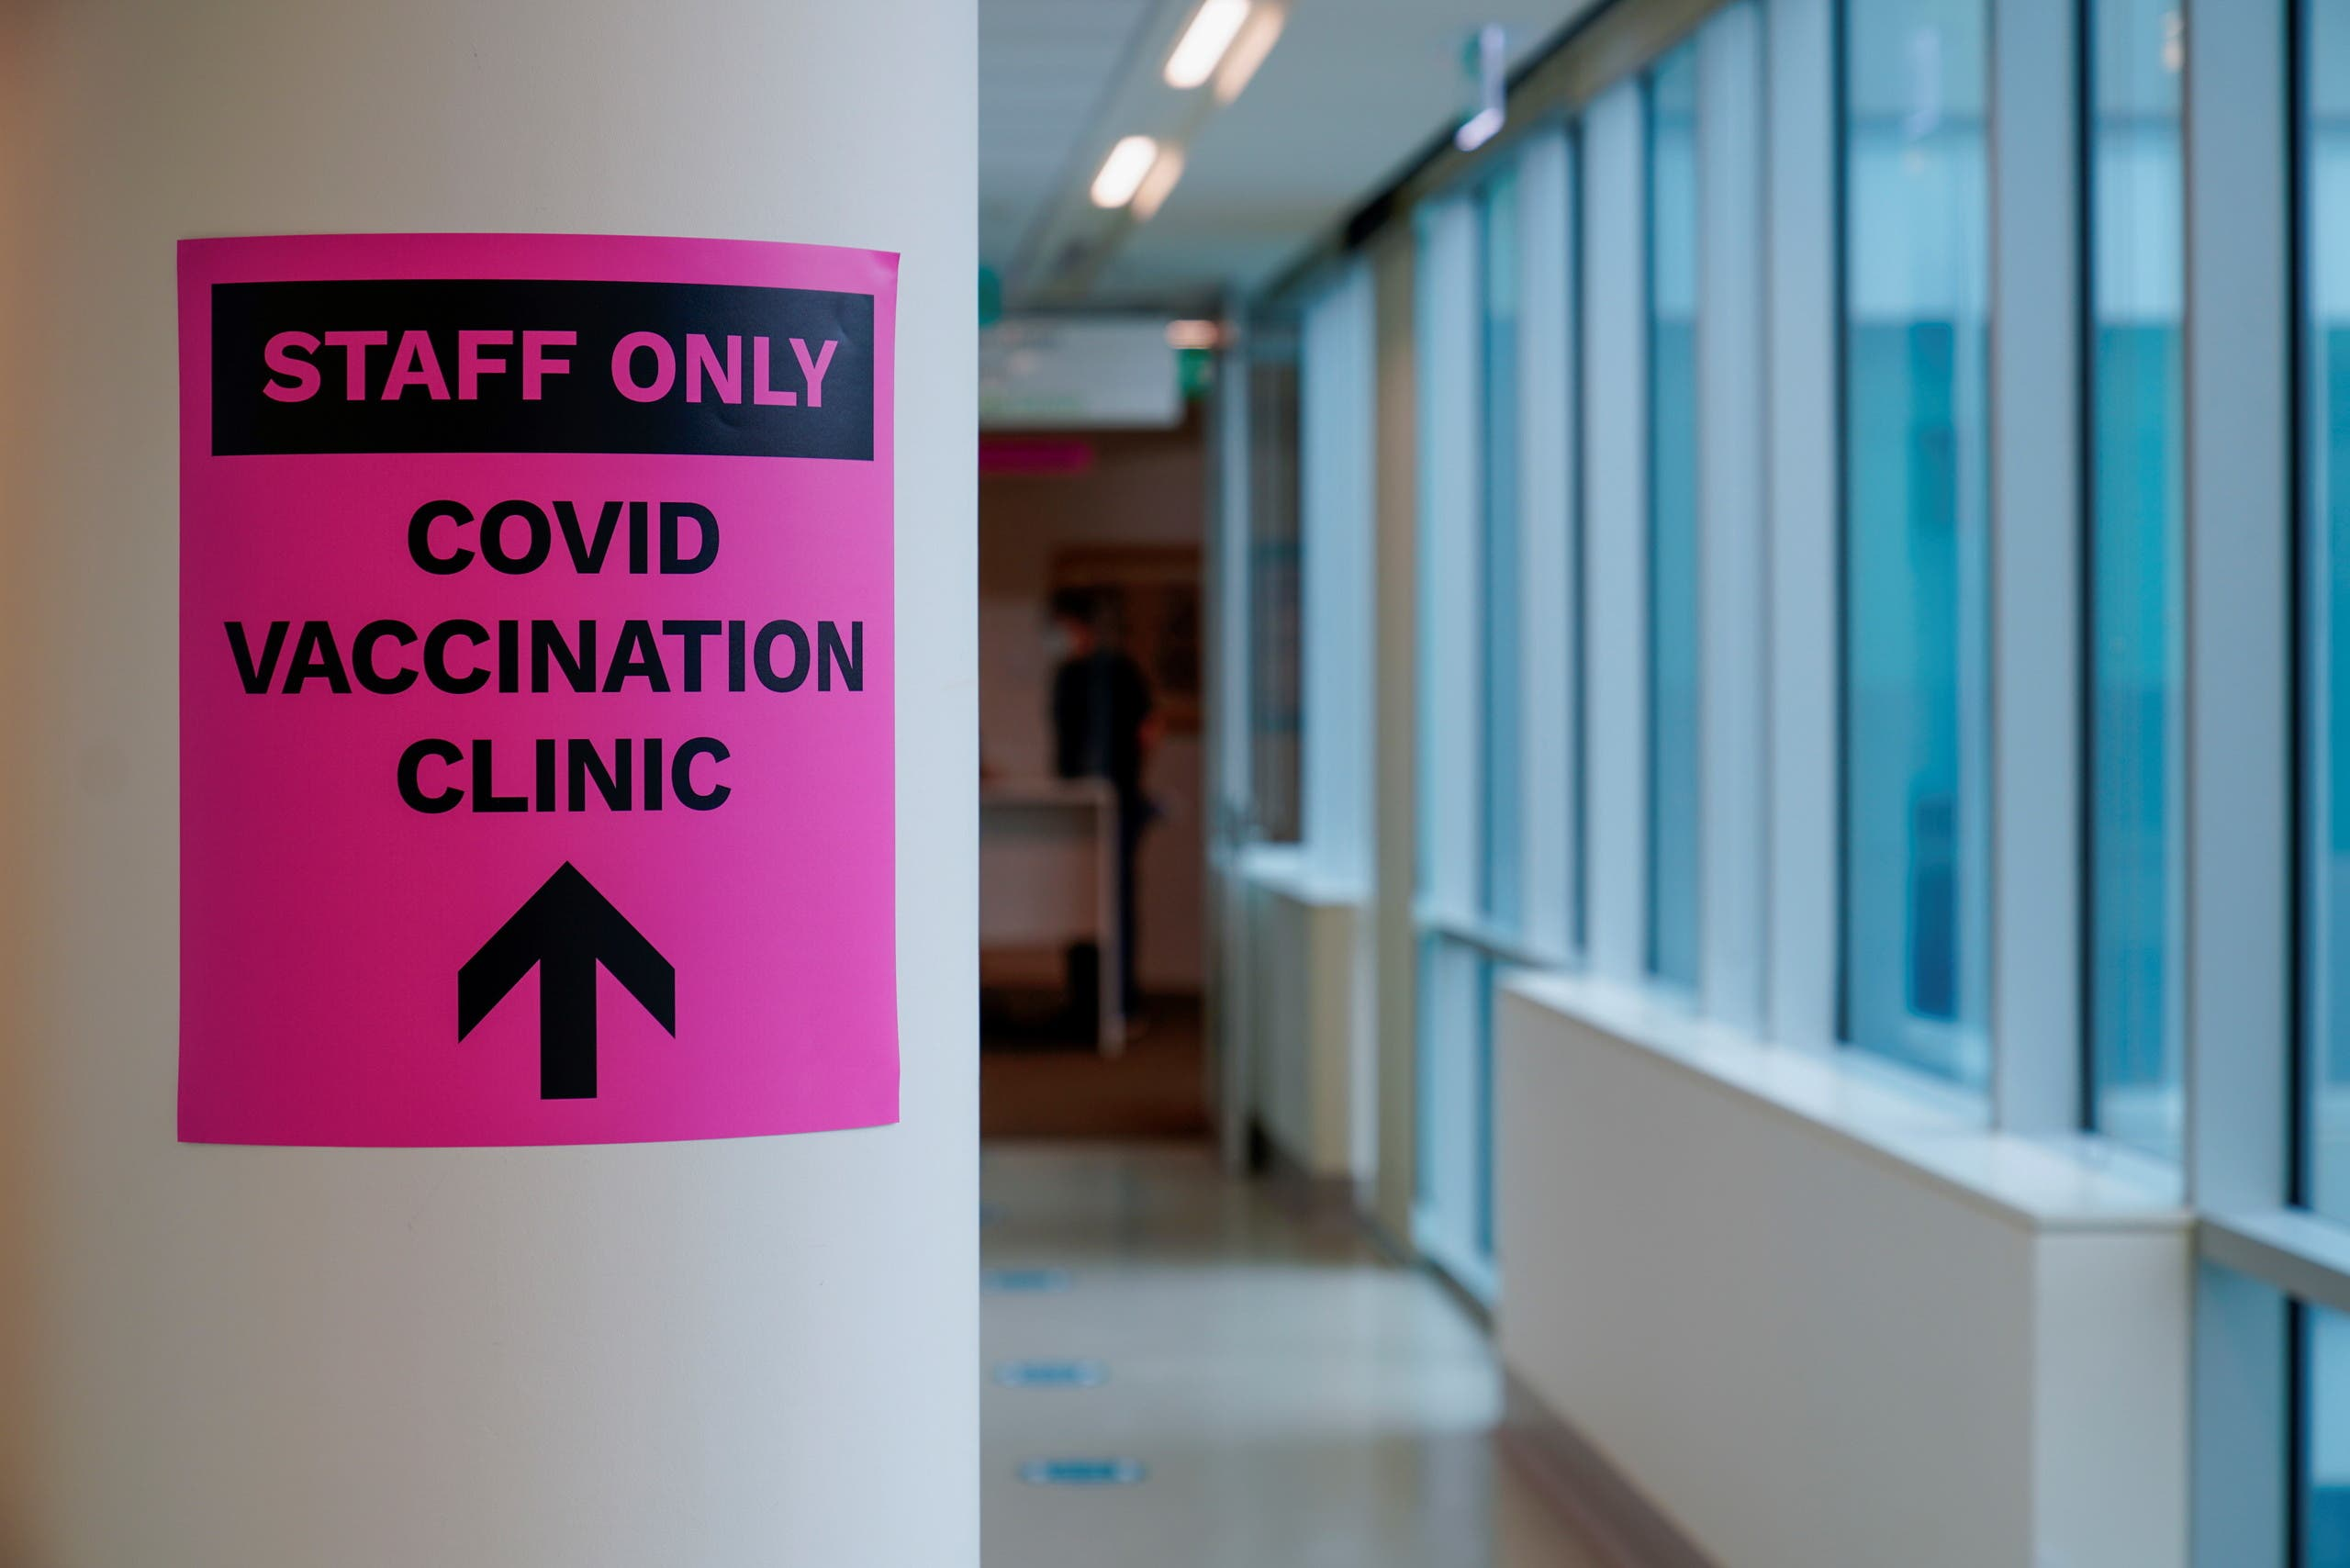 A sign for a COVID-19 vaccination clinic is seen in Melbourne. (Reuters)